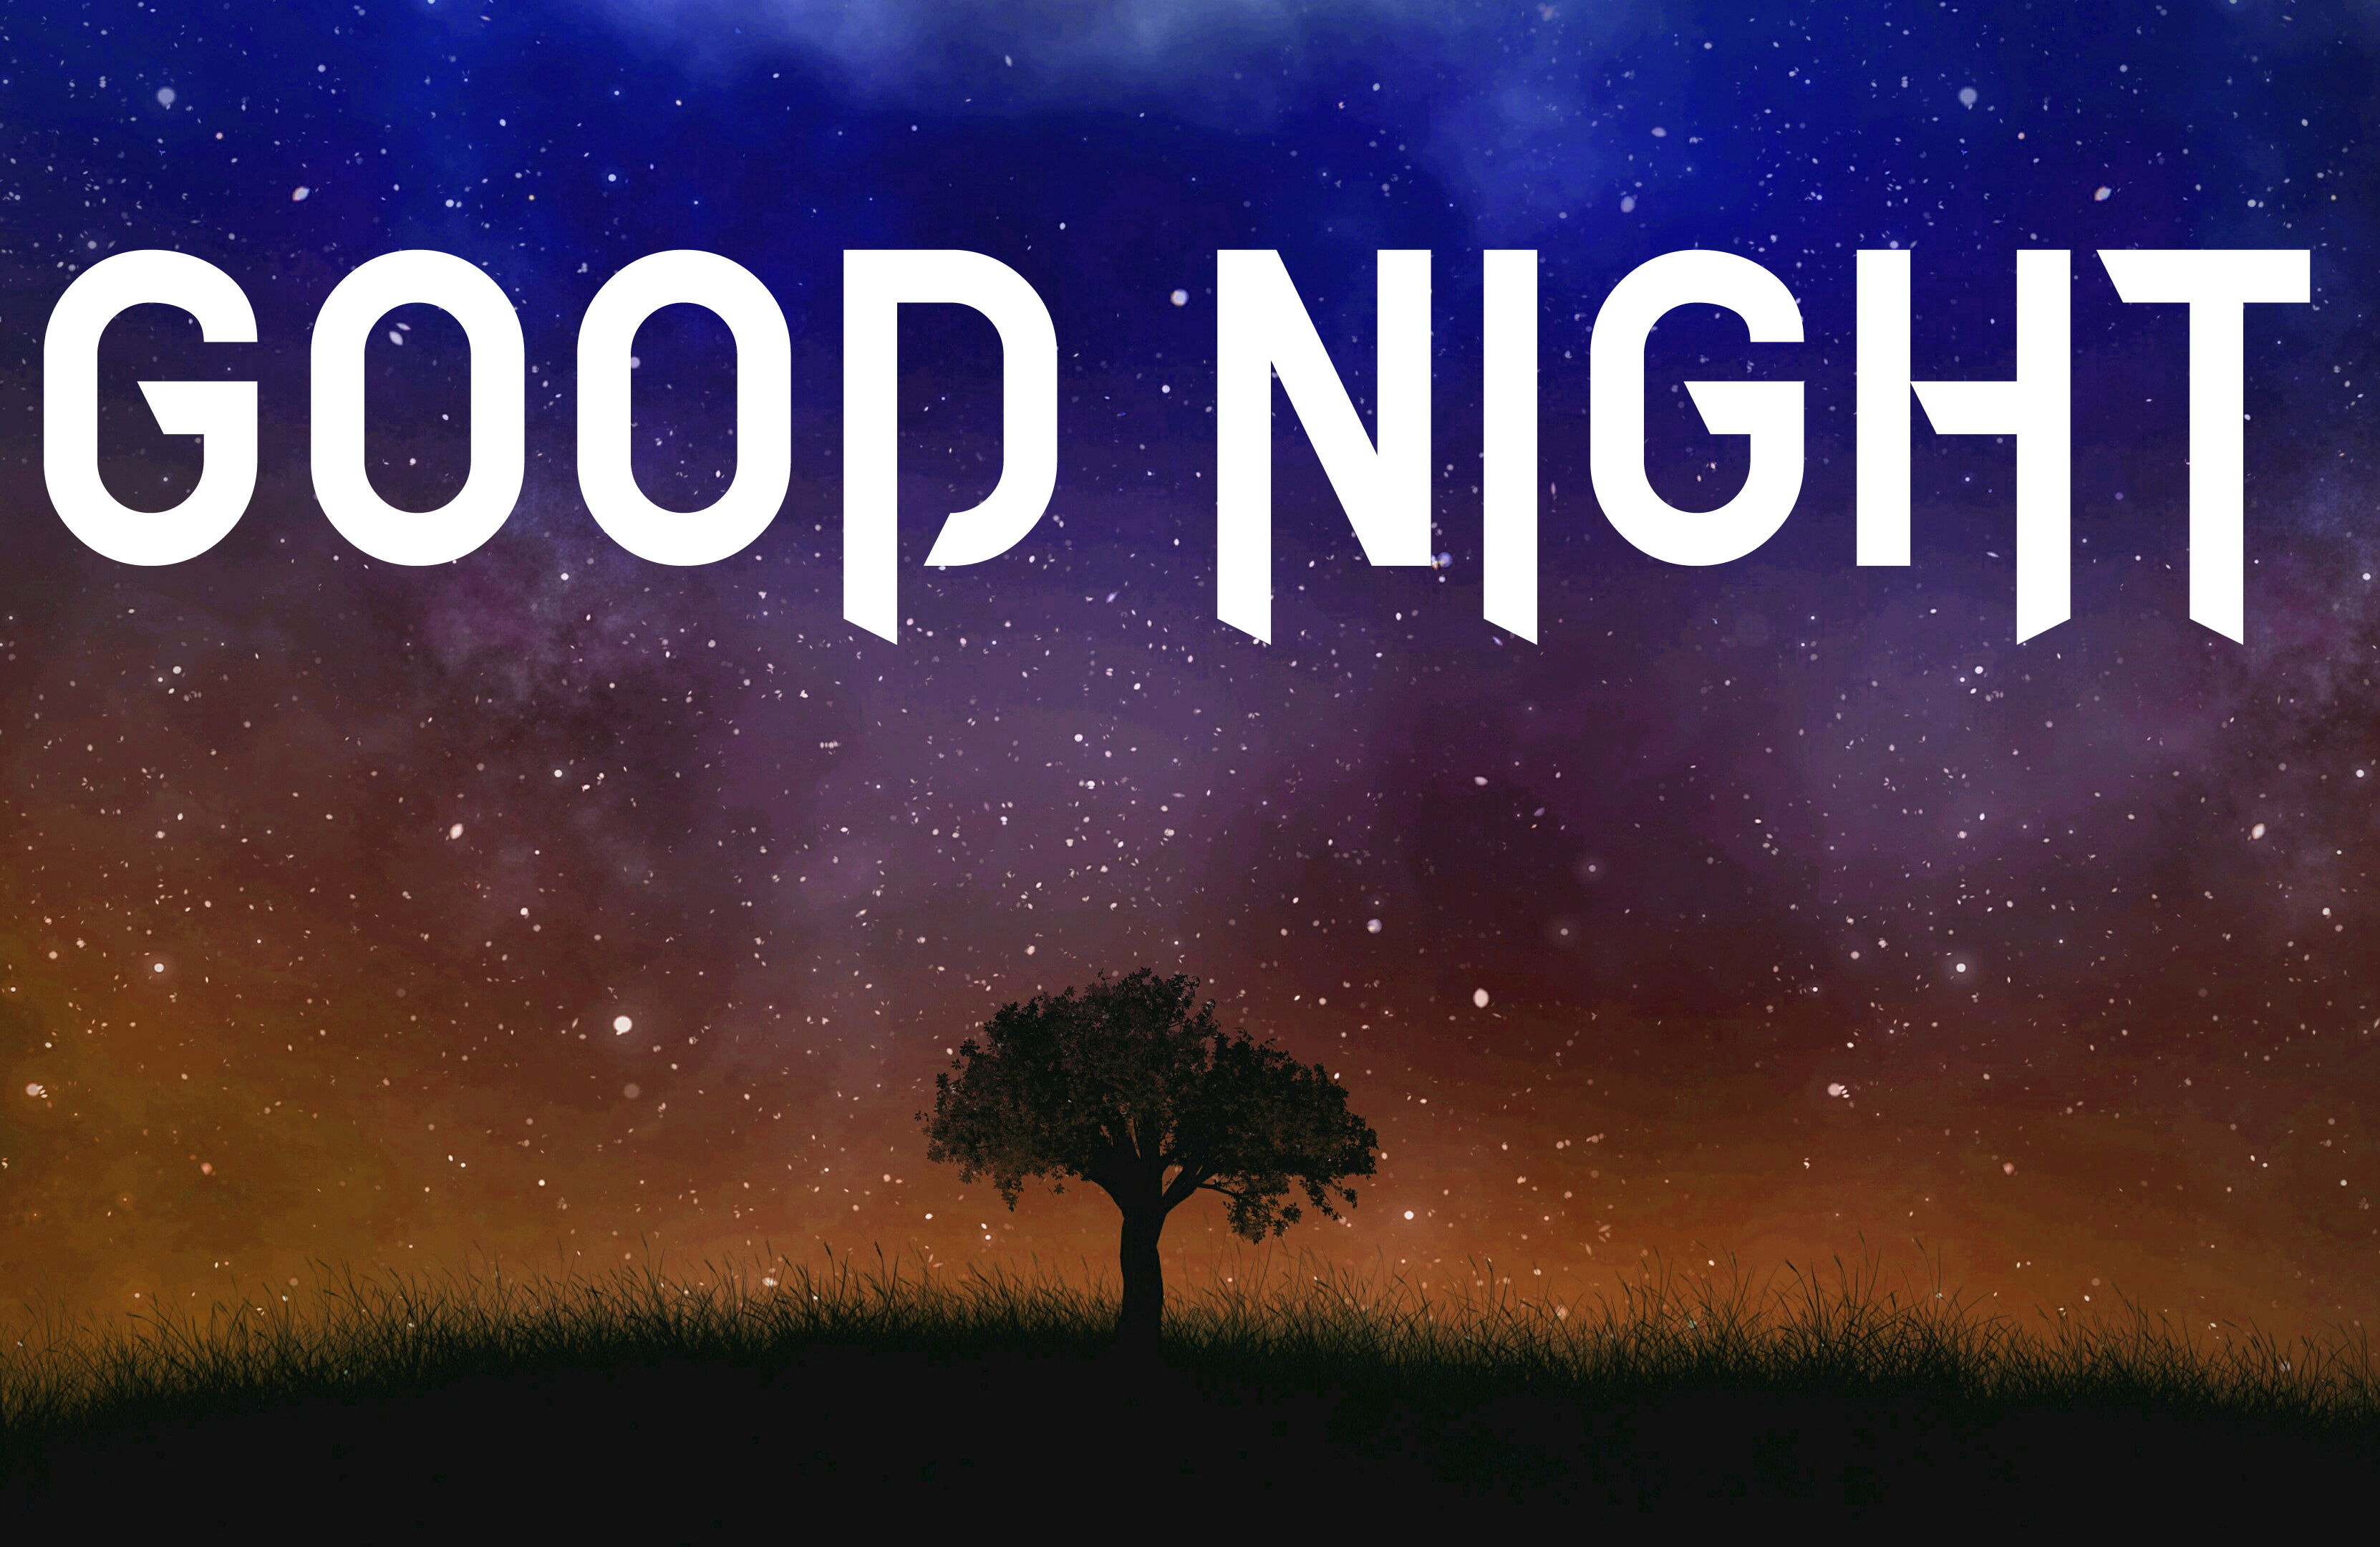 DOWNLOAD GOOD NIGHT IMAGES PICS PHOTO DOWNLOAD